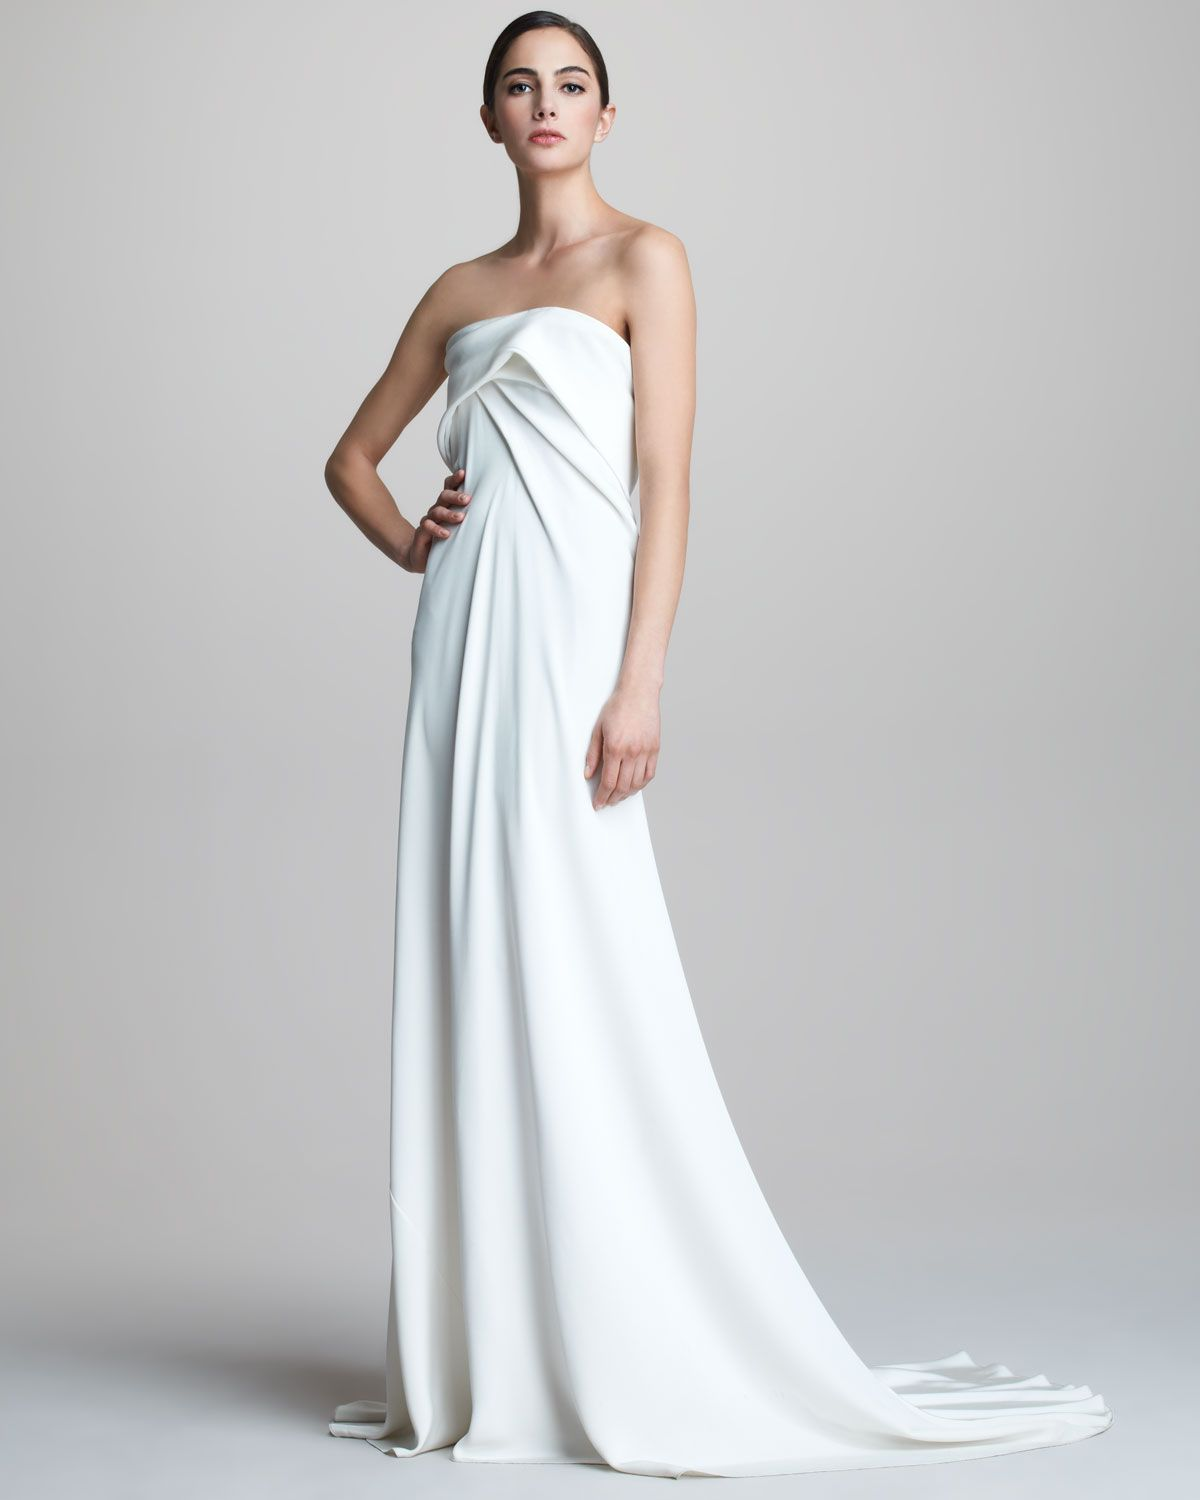 Donna Karan Bridal Dresses,Donna Karan Bridesmaid Dress,Donna Karan Wedding Dress,